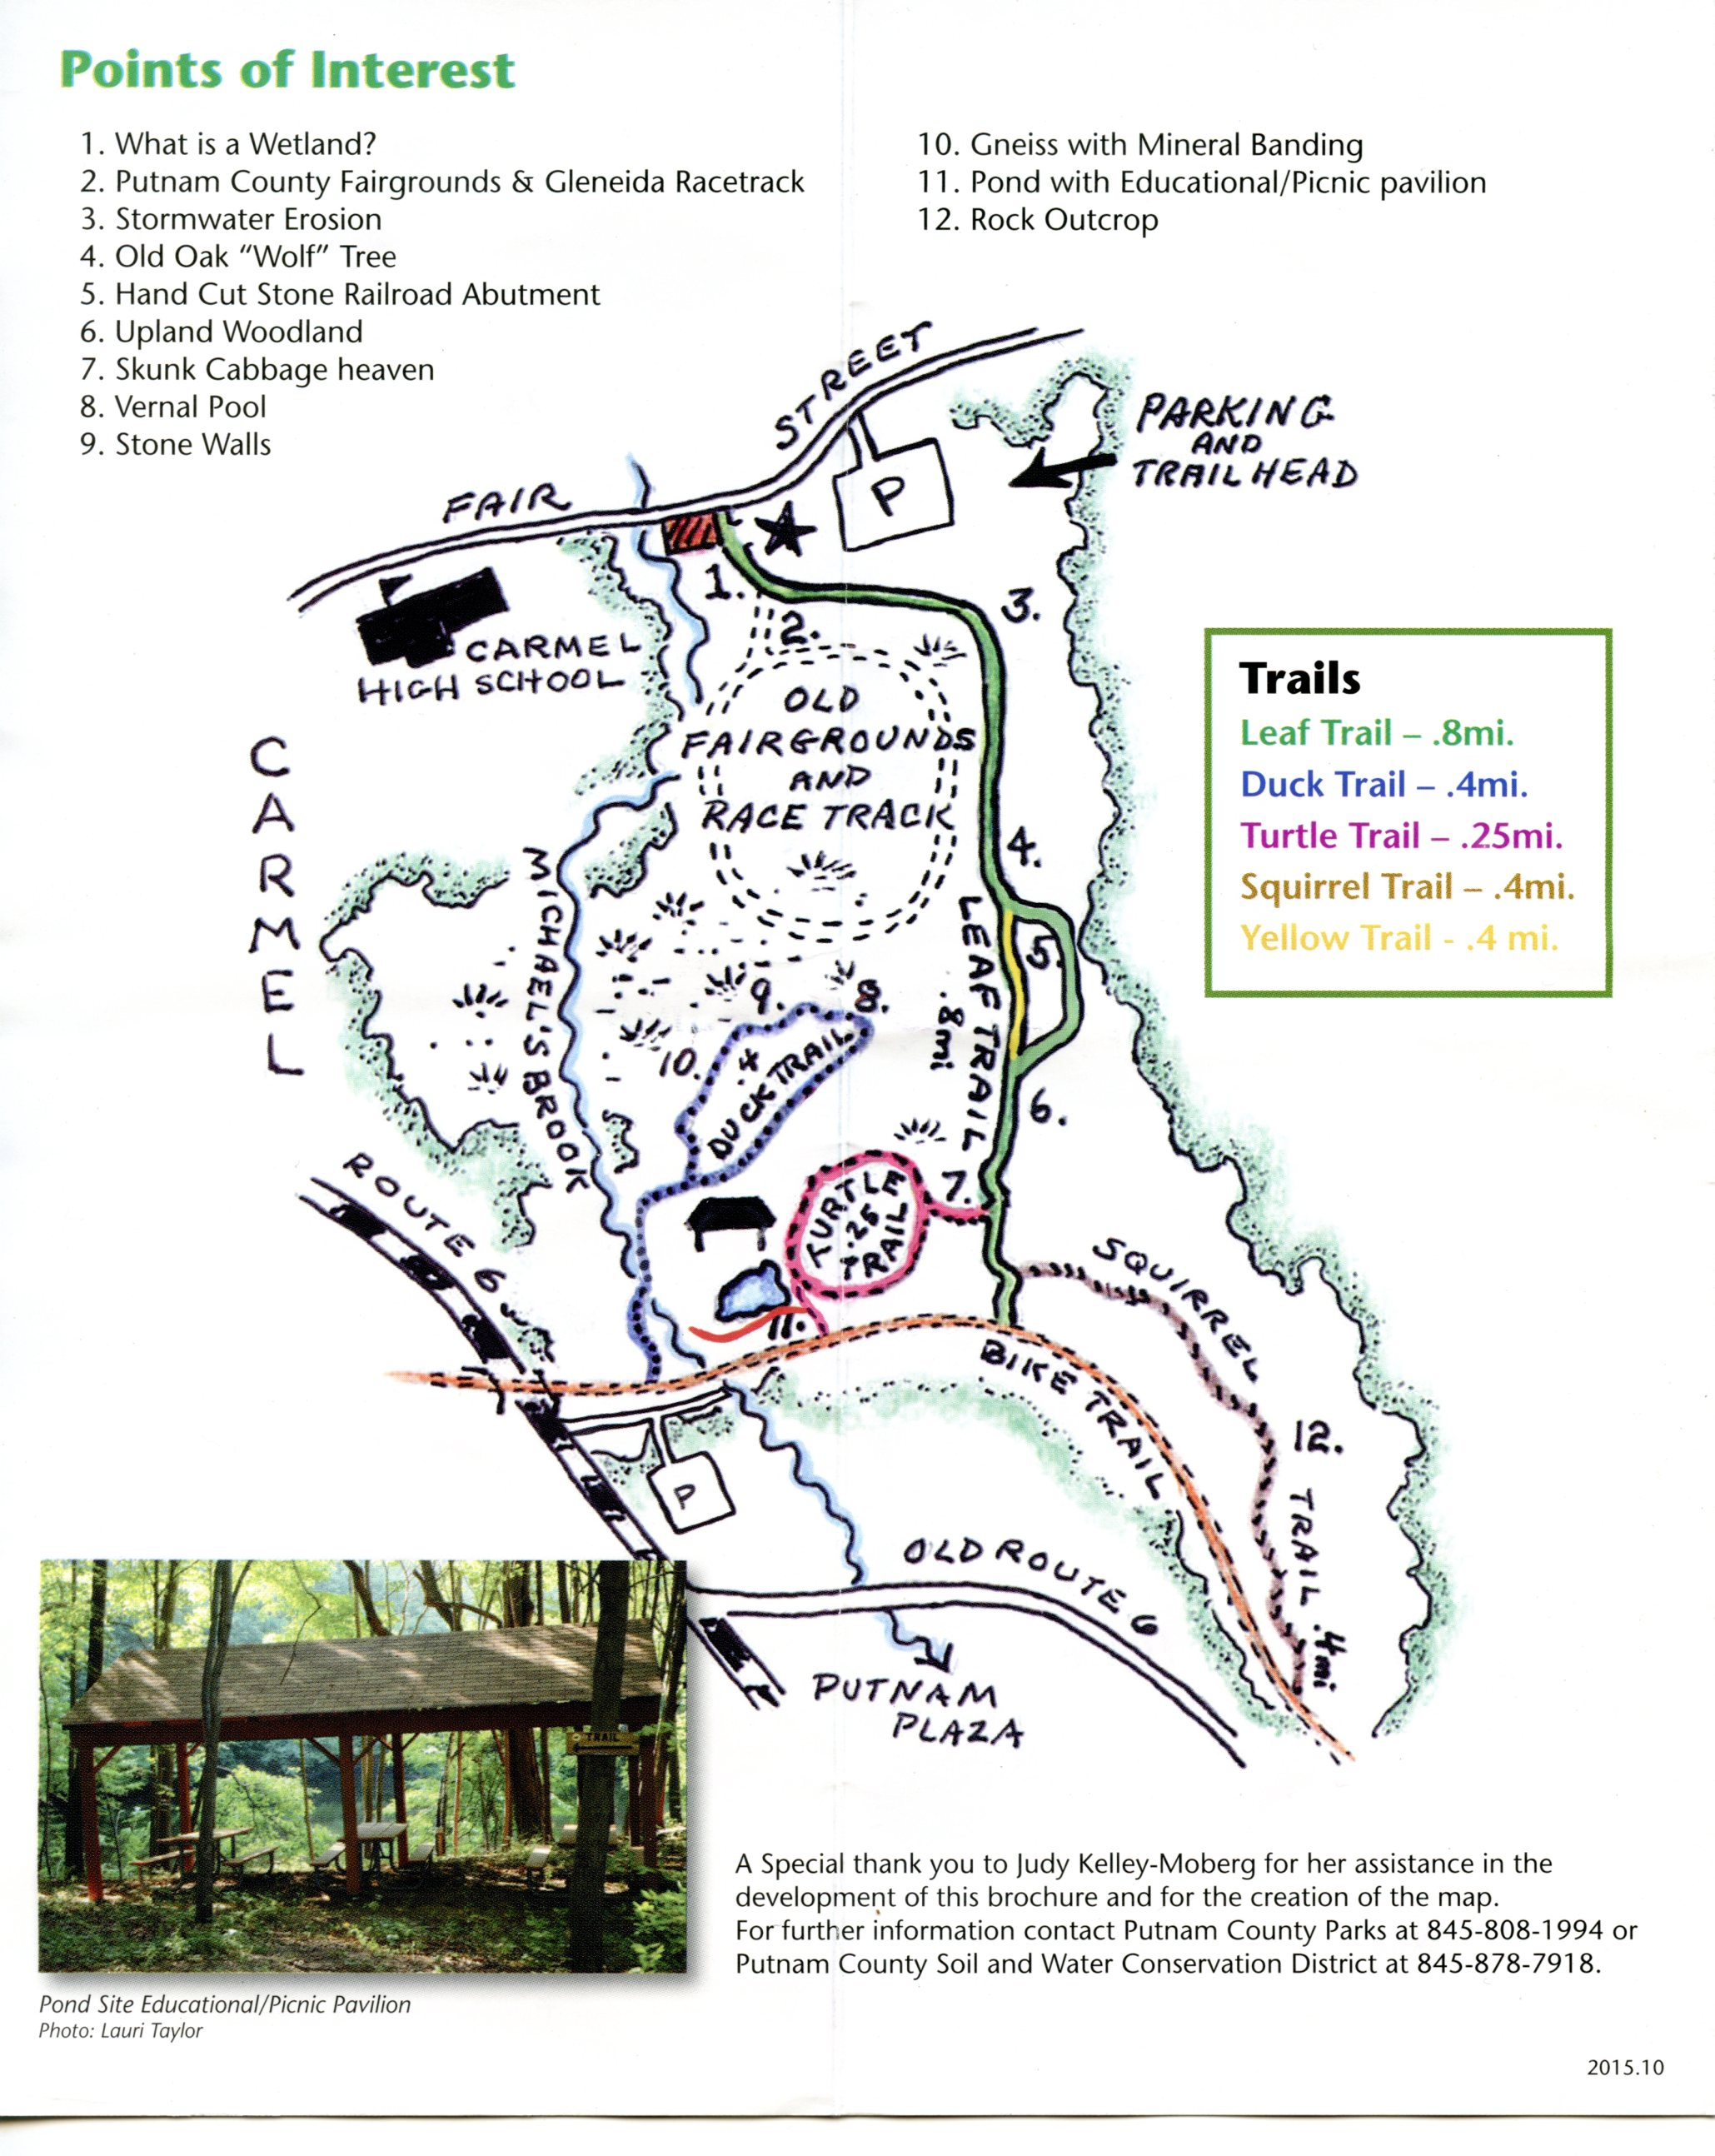 Source: Fred Dill Wildlife Sanctuary and Outdoor Education Center brochure